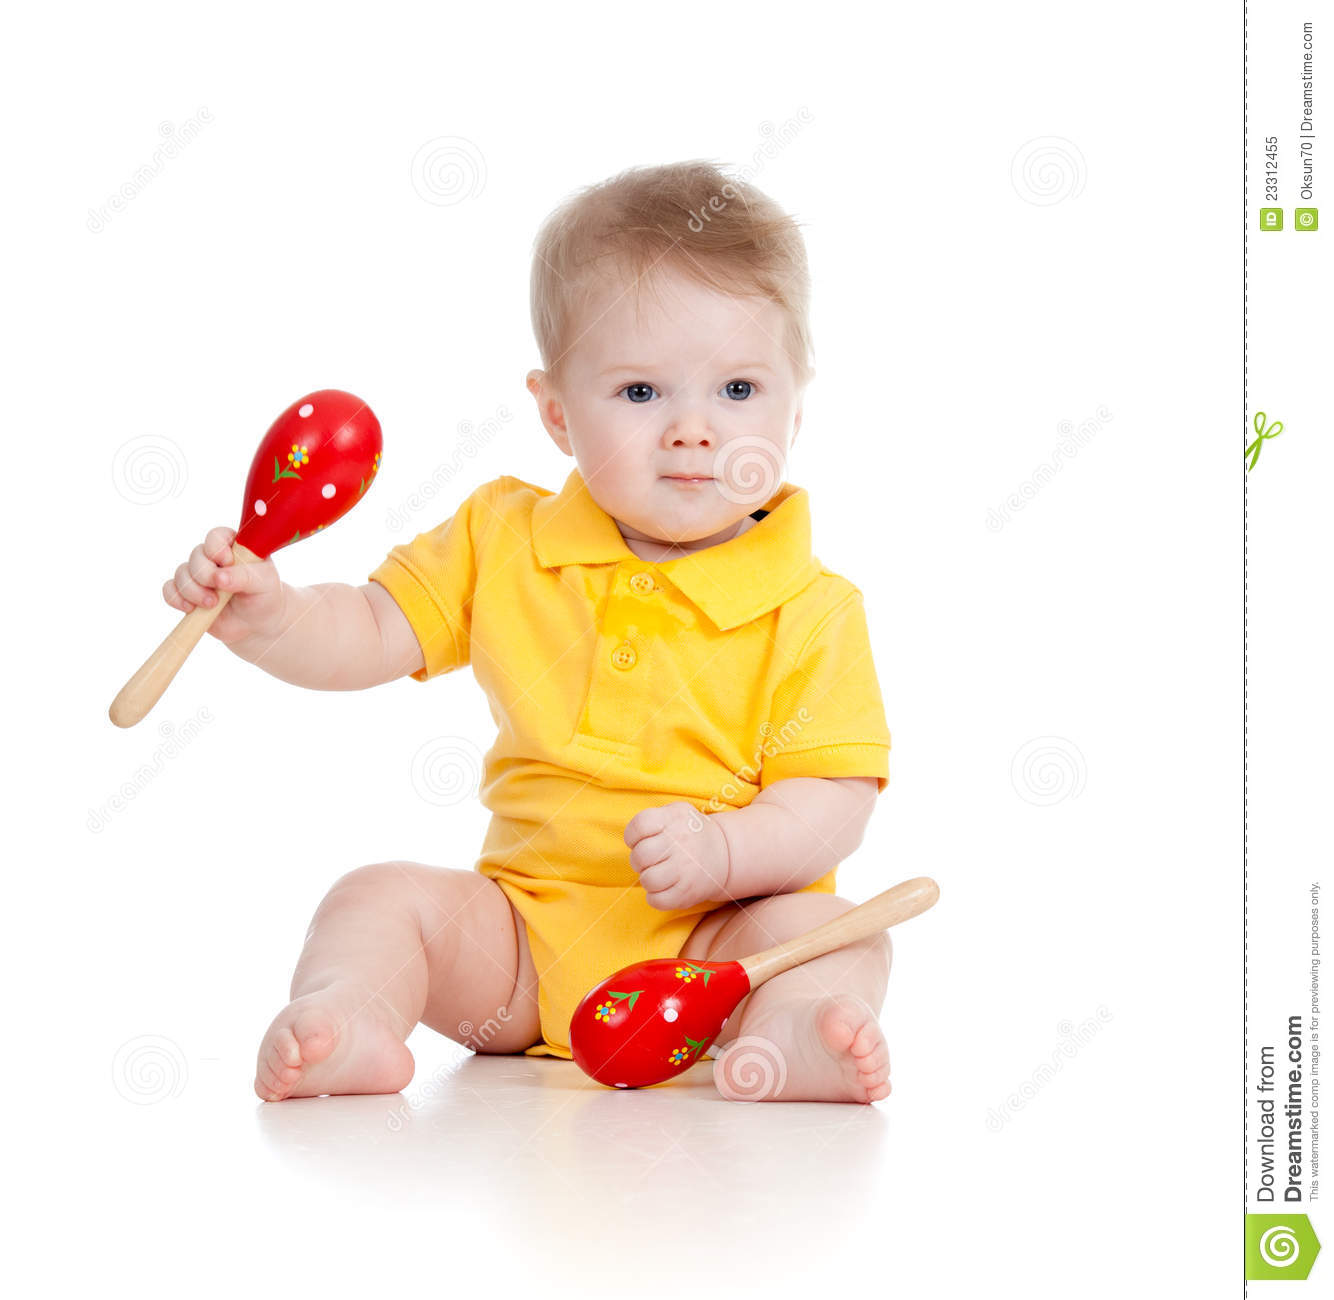 Musical Toys For Toddlers Boys : Baby boy with musical toys maracas stock image